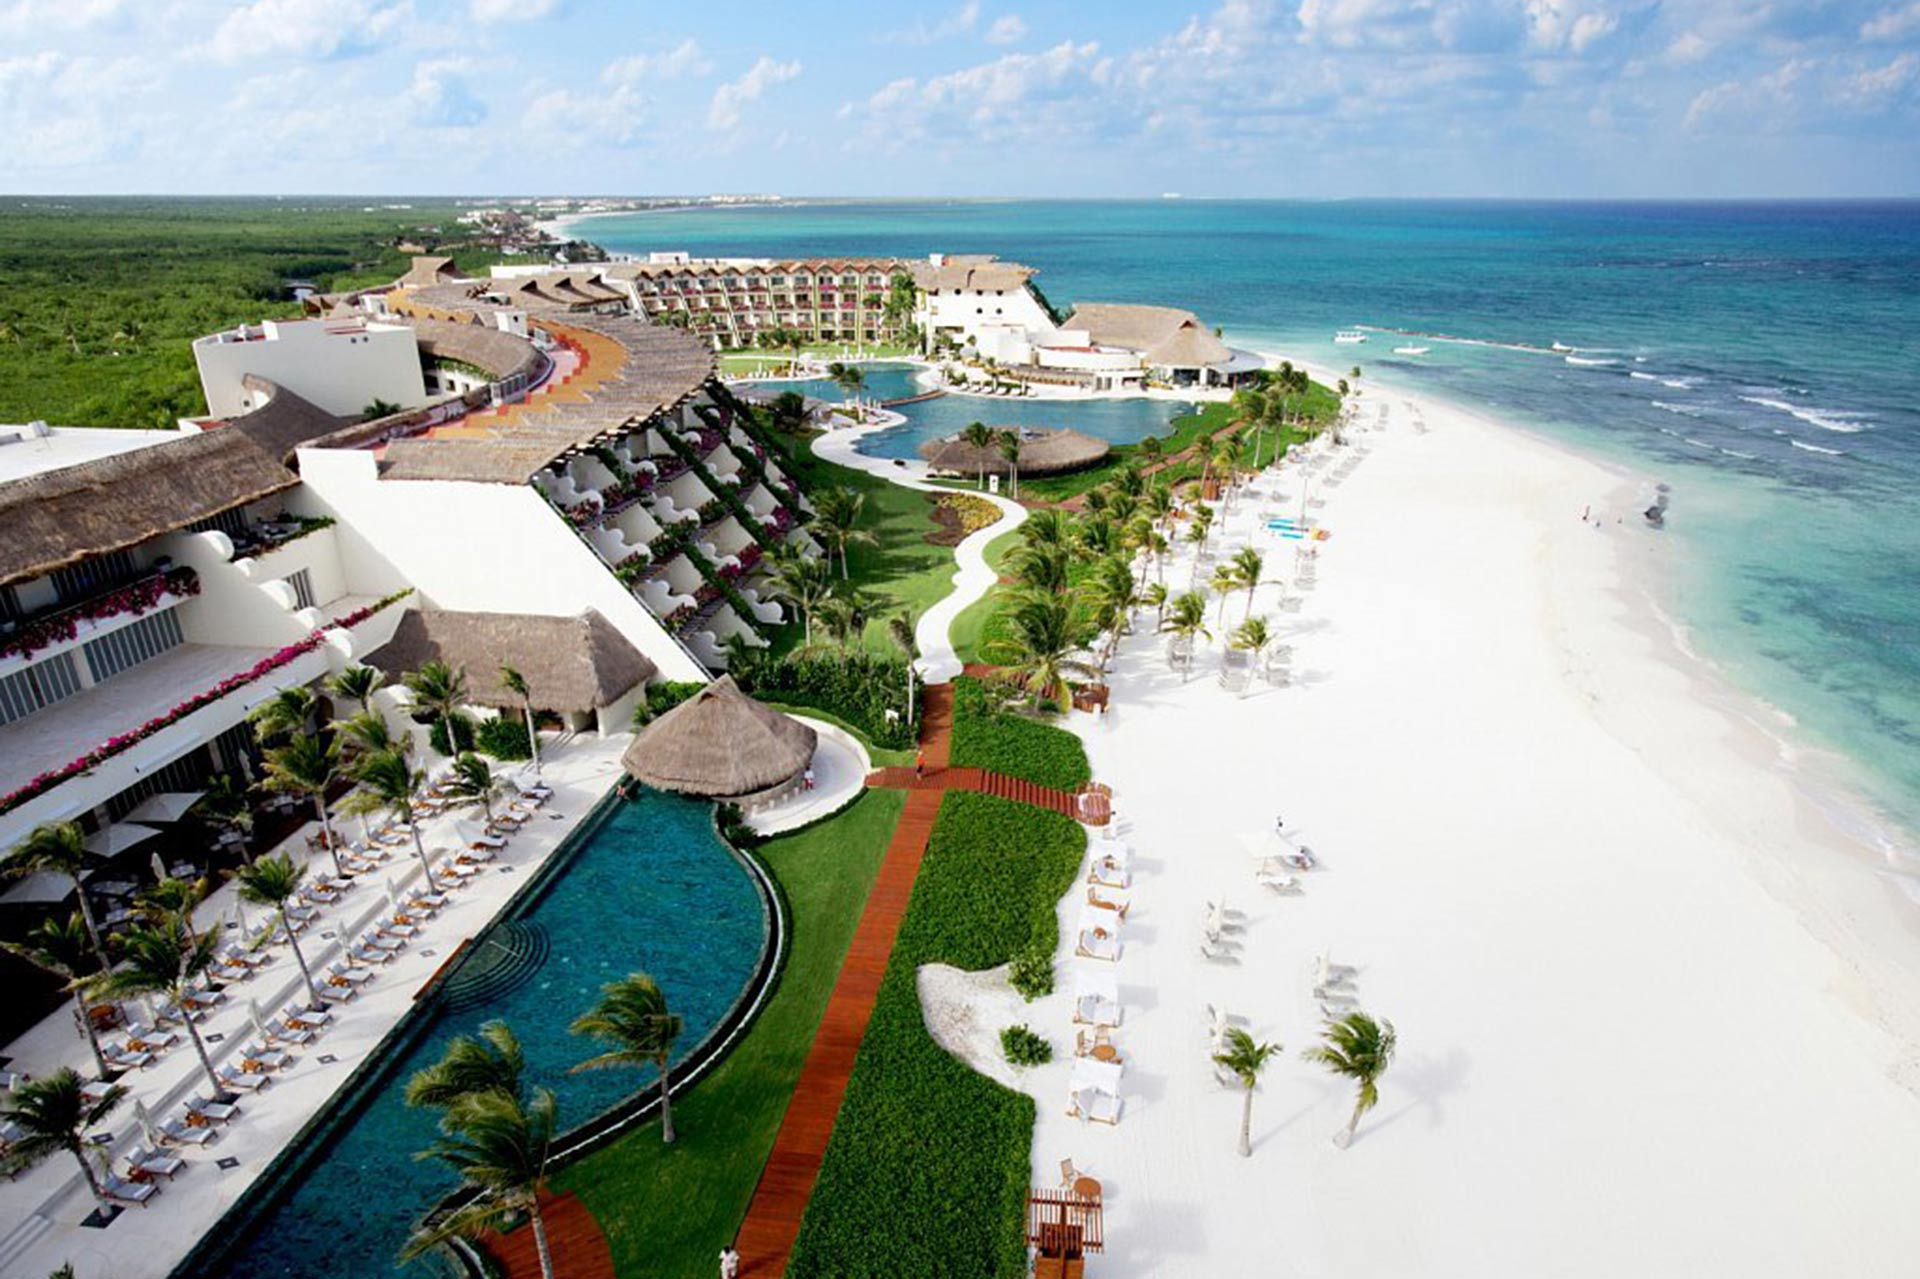 Beach at Grand Velas Riviera Maya - Riviera Maya, MX - All Inclusive Resort